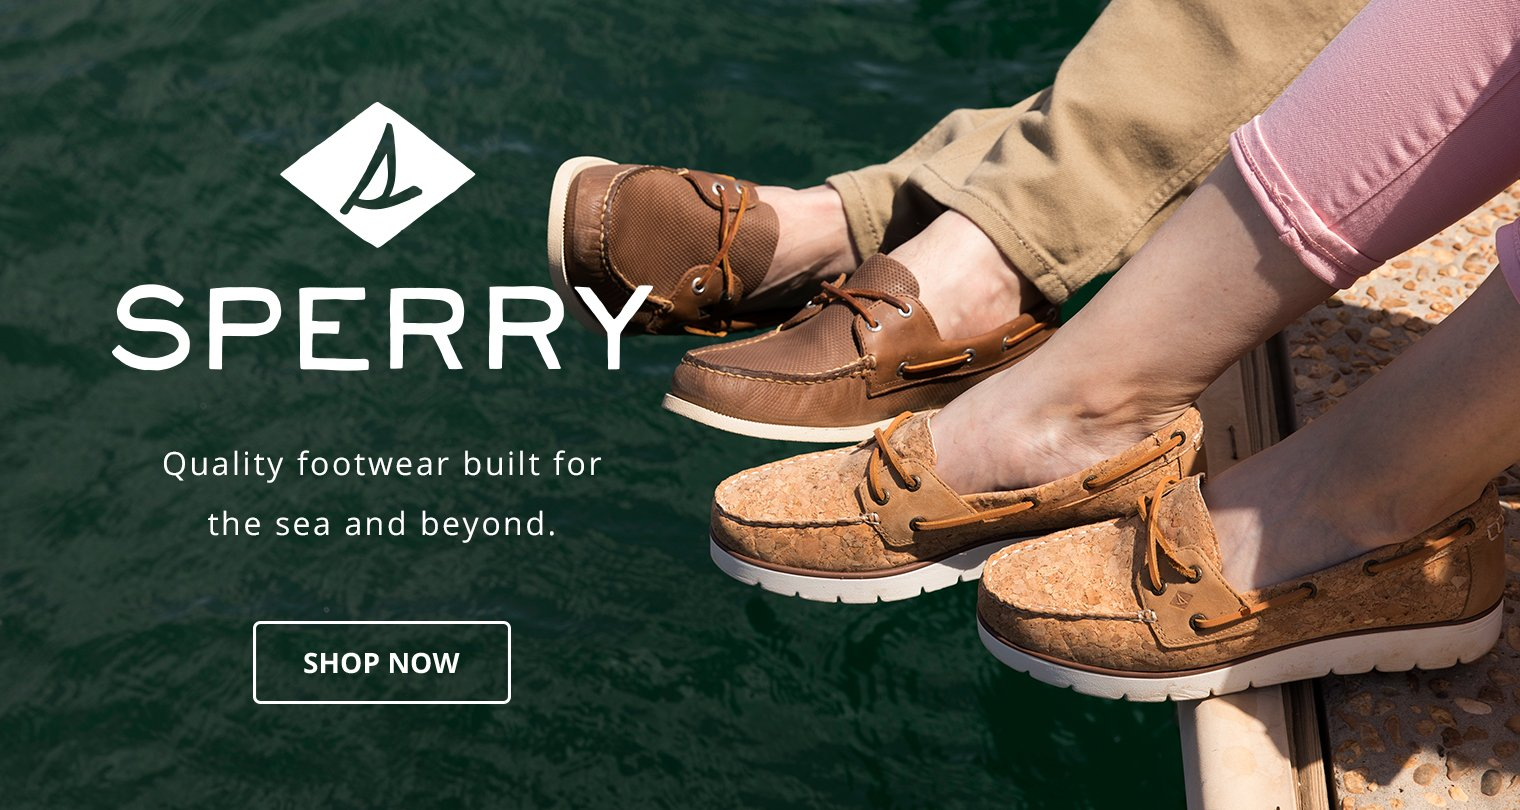 Sperry. Quality footwear built for the sea and beyond. Shop Now.